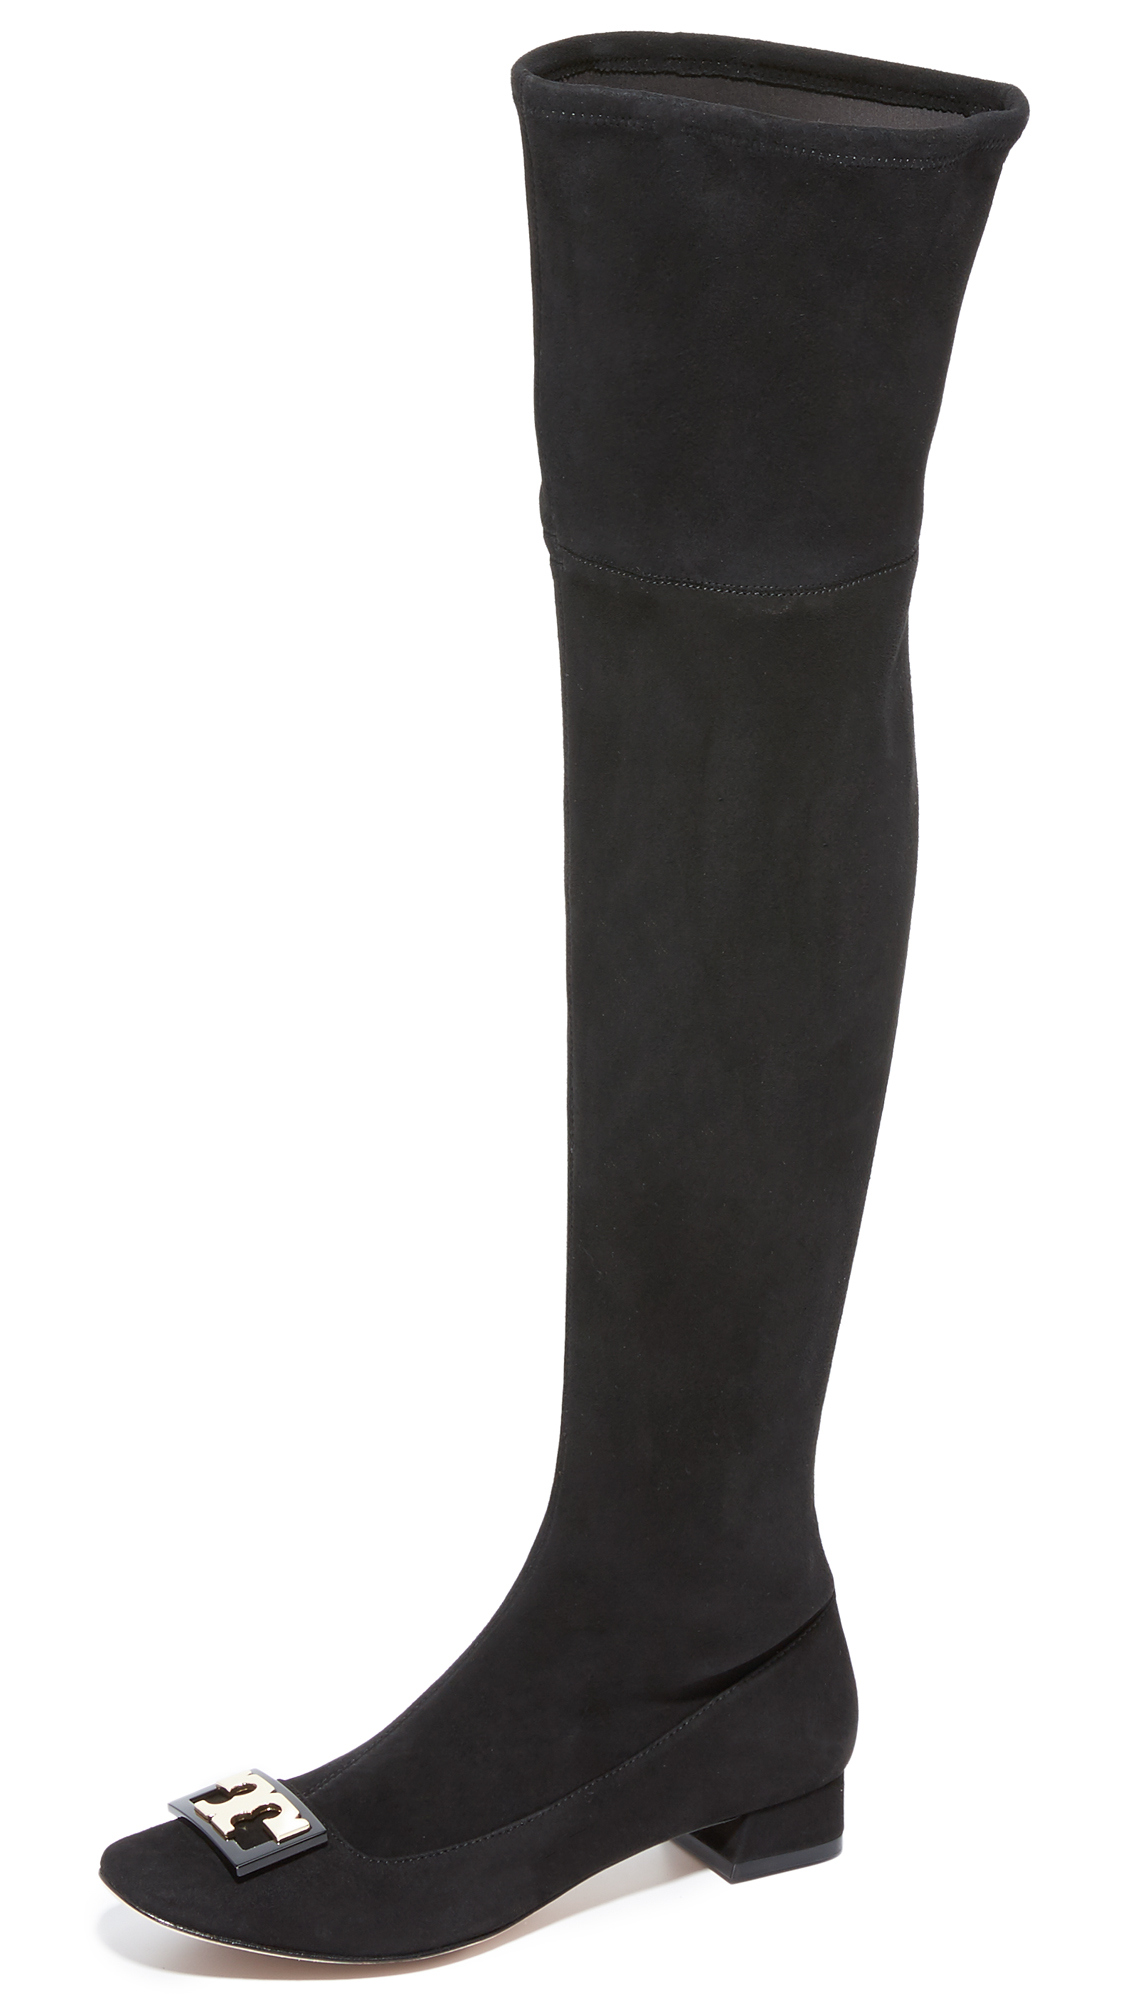 Tory Burch Gigi Stretch Over The Knee Boots - Black